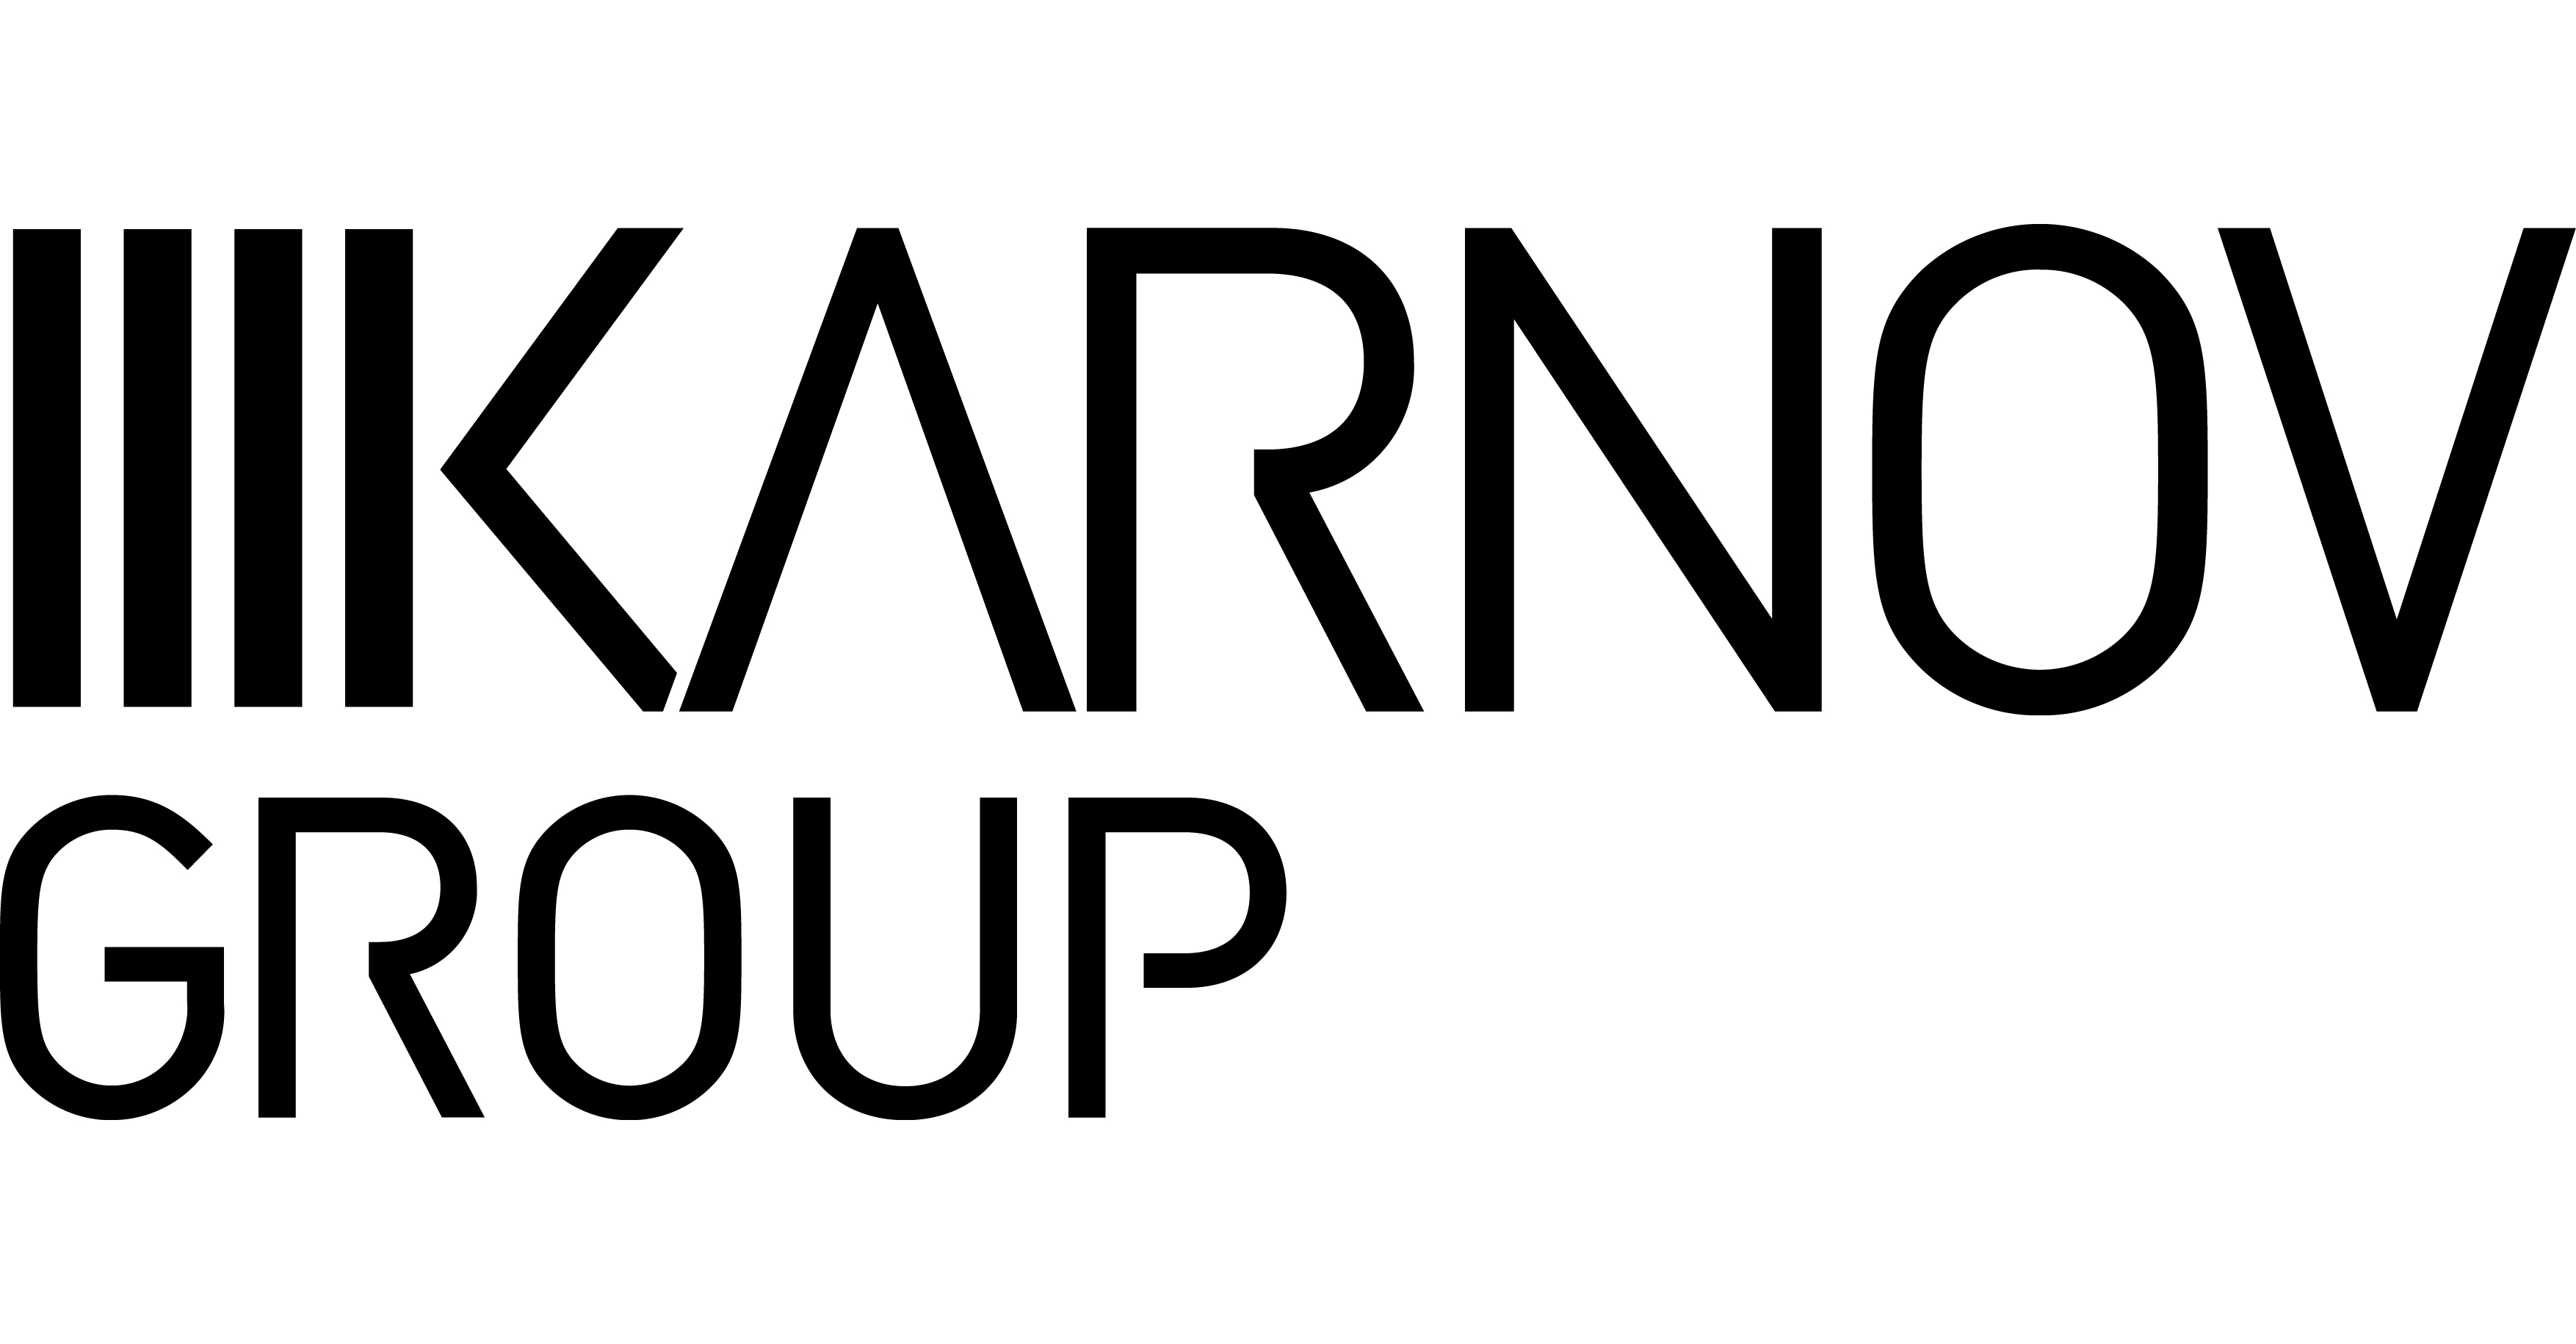 Karnov Group logo